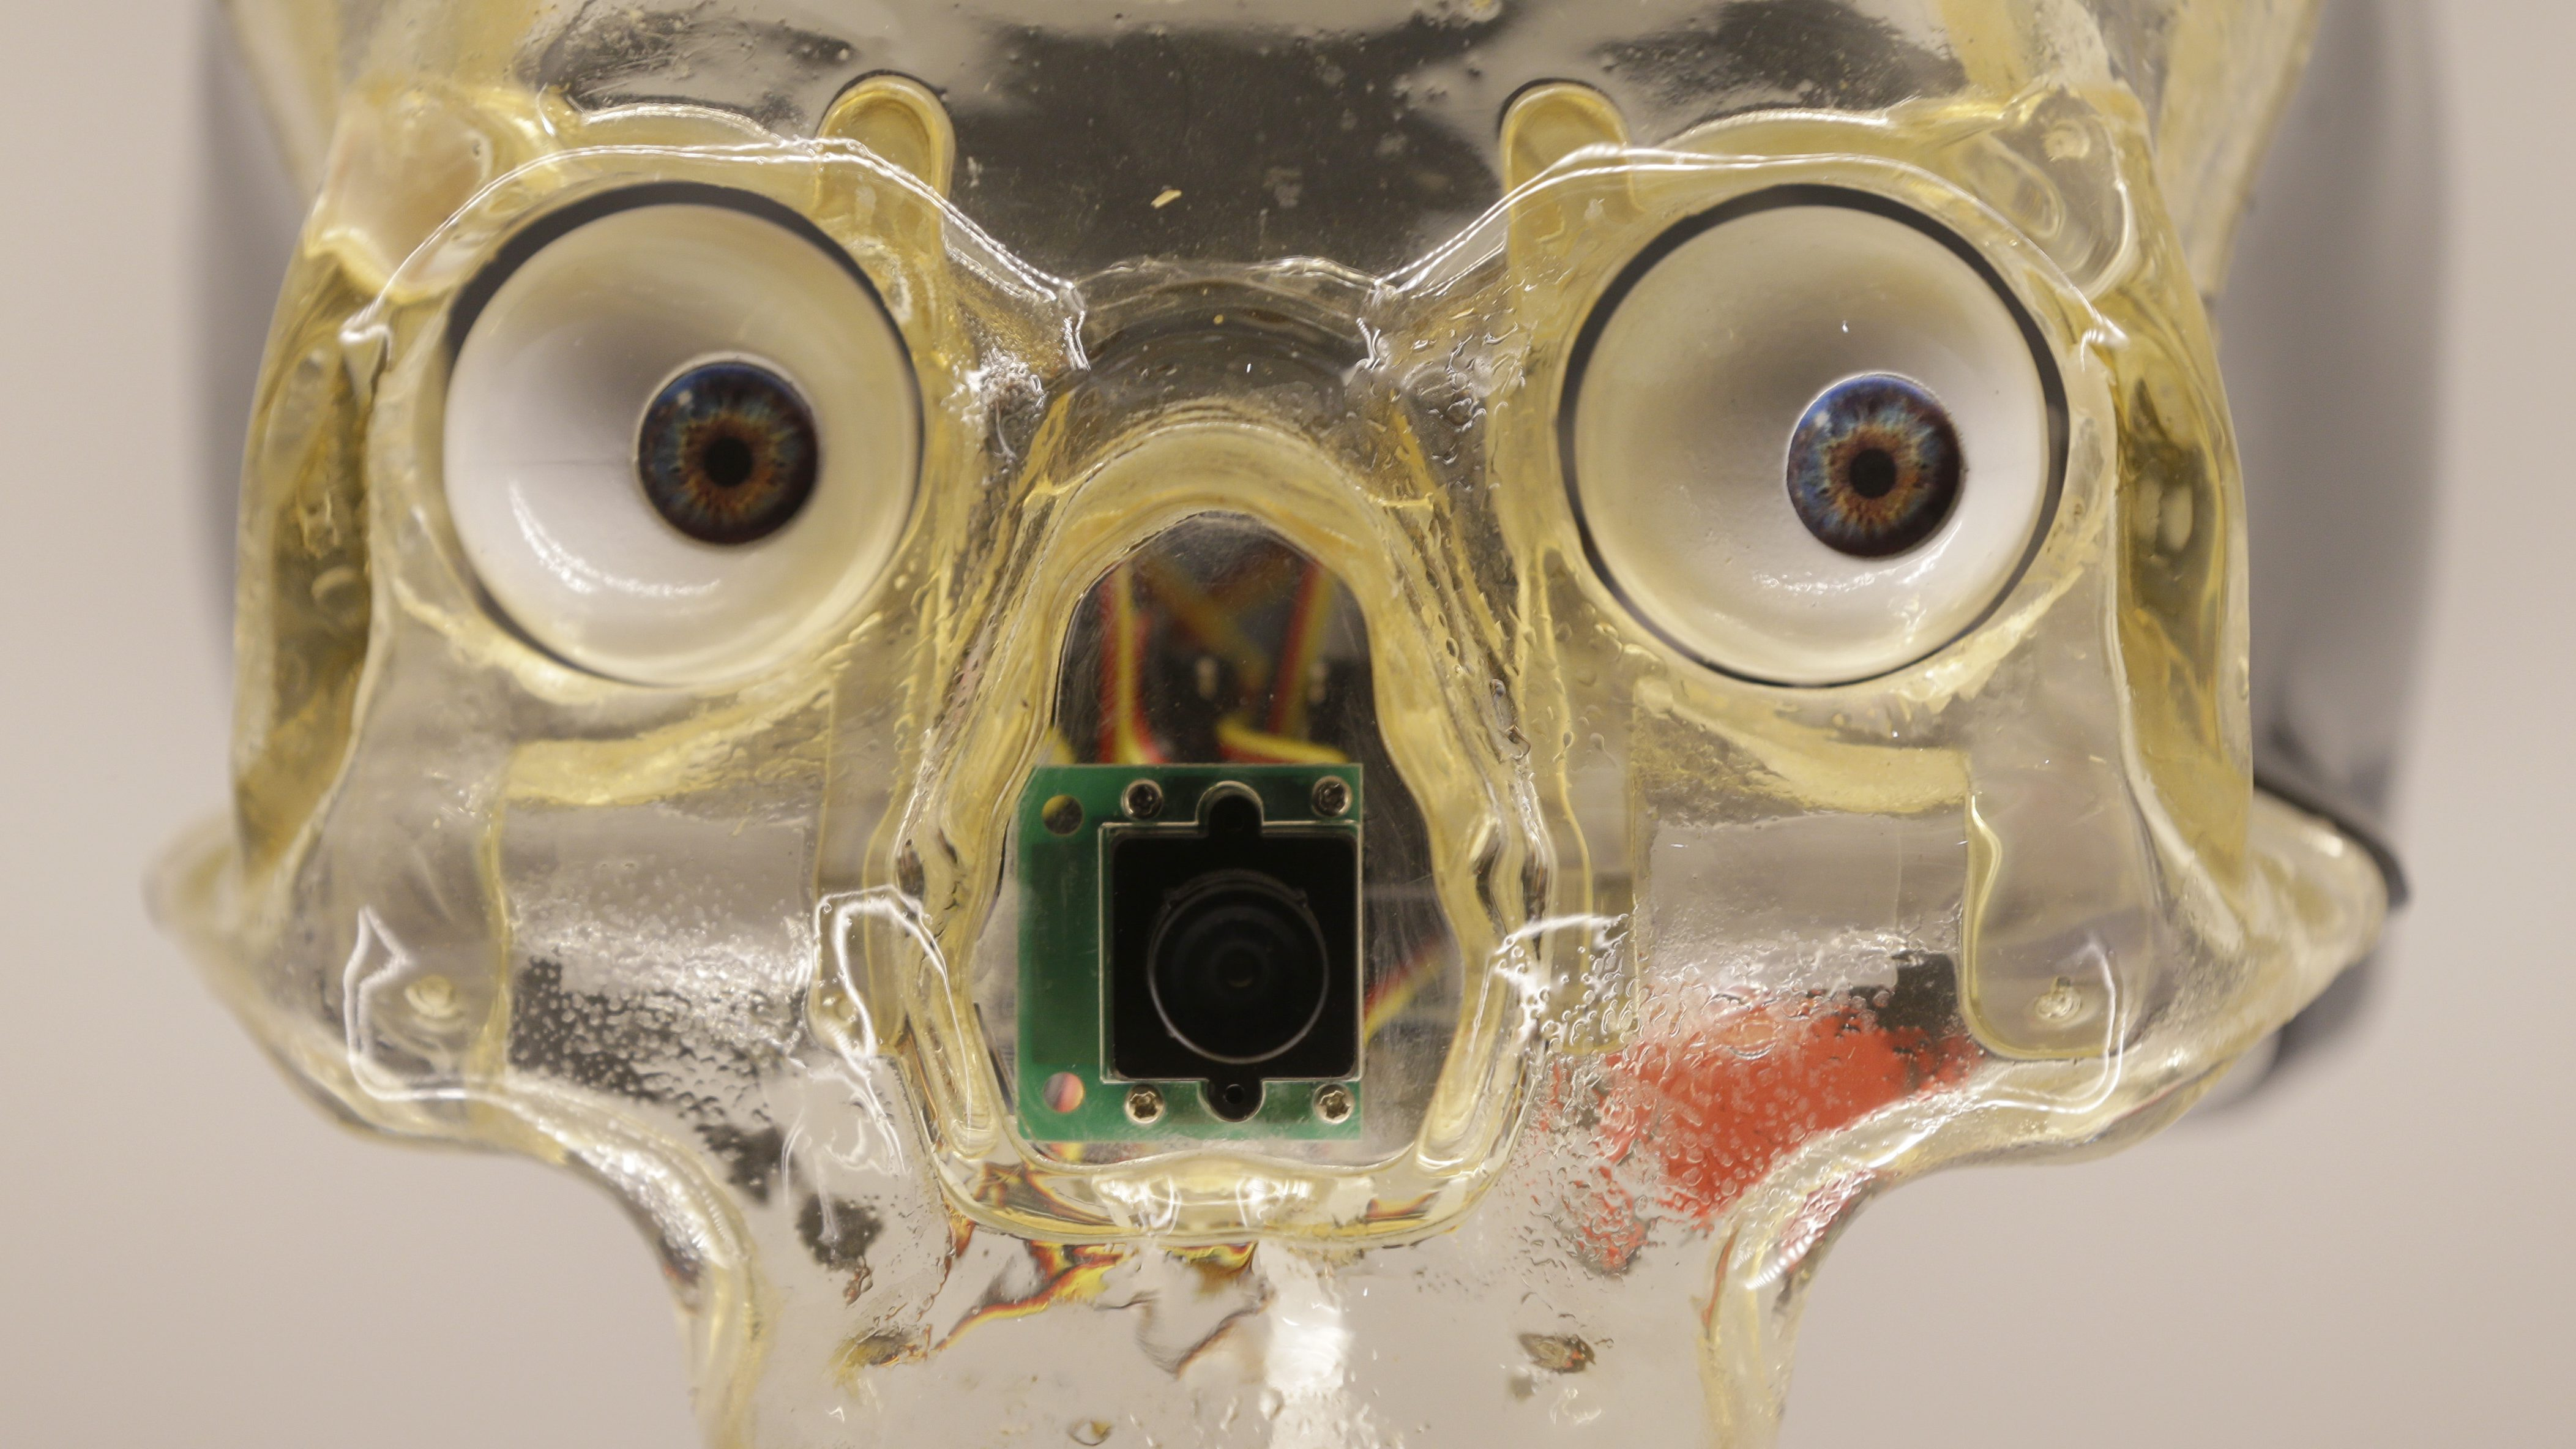 Artwork by Canadian Louis-Philippe Demers, which shows an artificial skull with robotic eyes which follows the motion of a visitor, during a press preview for the Robots exhibition held at the Science Museum in London, Tuesday, Feb. 7, 2017. The exhibition which shows 500 years of mechanical and robotic advances is open to the public form Feb. 8 through to Sept. 3. (AP Photo/Alastair Grant)